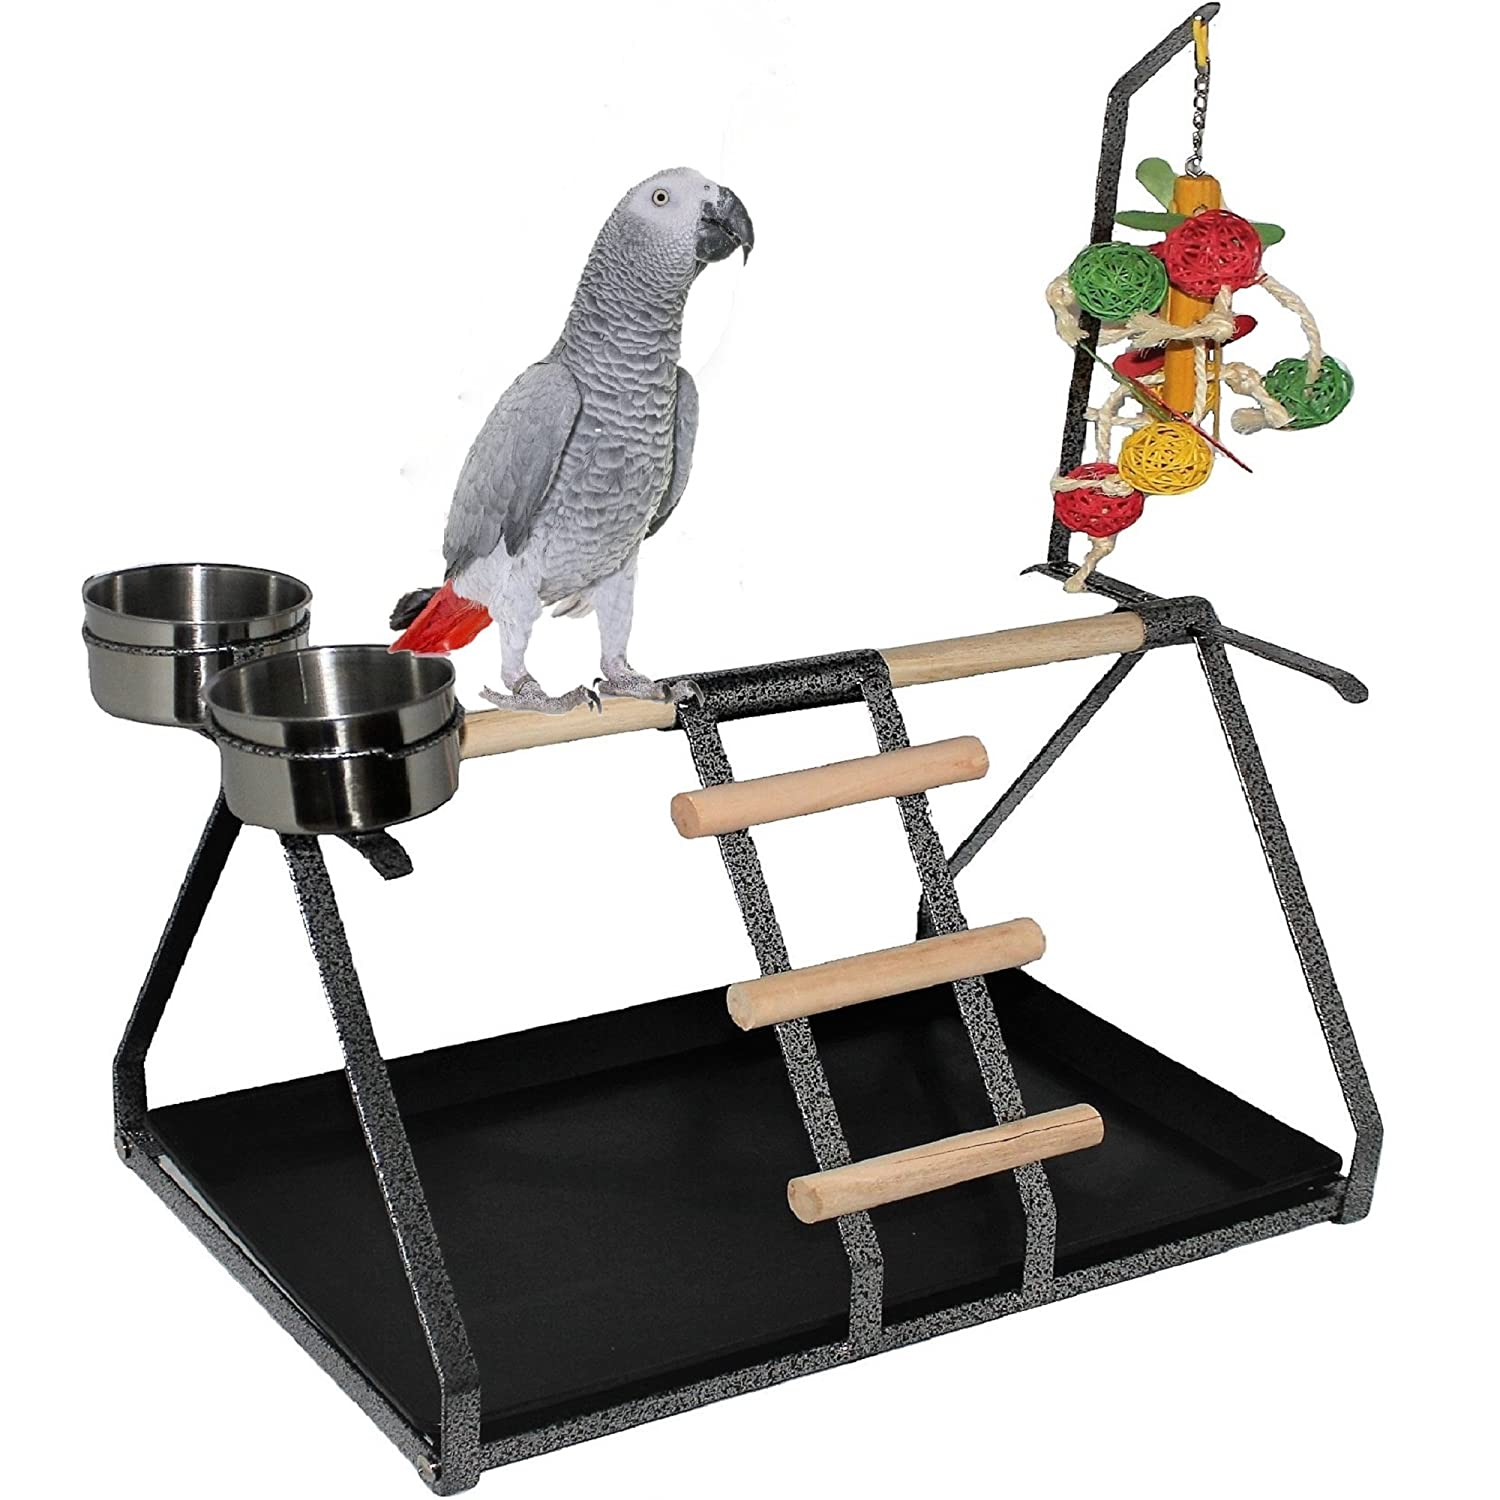 "FDC Parrot Bird Perch Table Top Stand Metal Wood 2 Steel Cups Play for Medium and Large Breeds 17.5"" x 12.5"" x 11"""